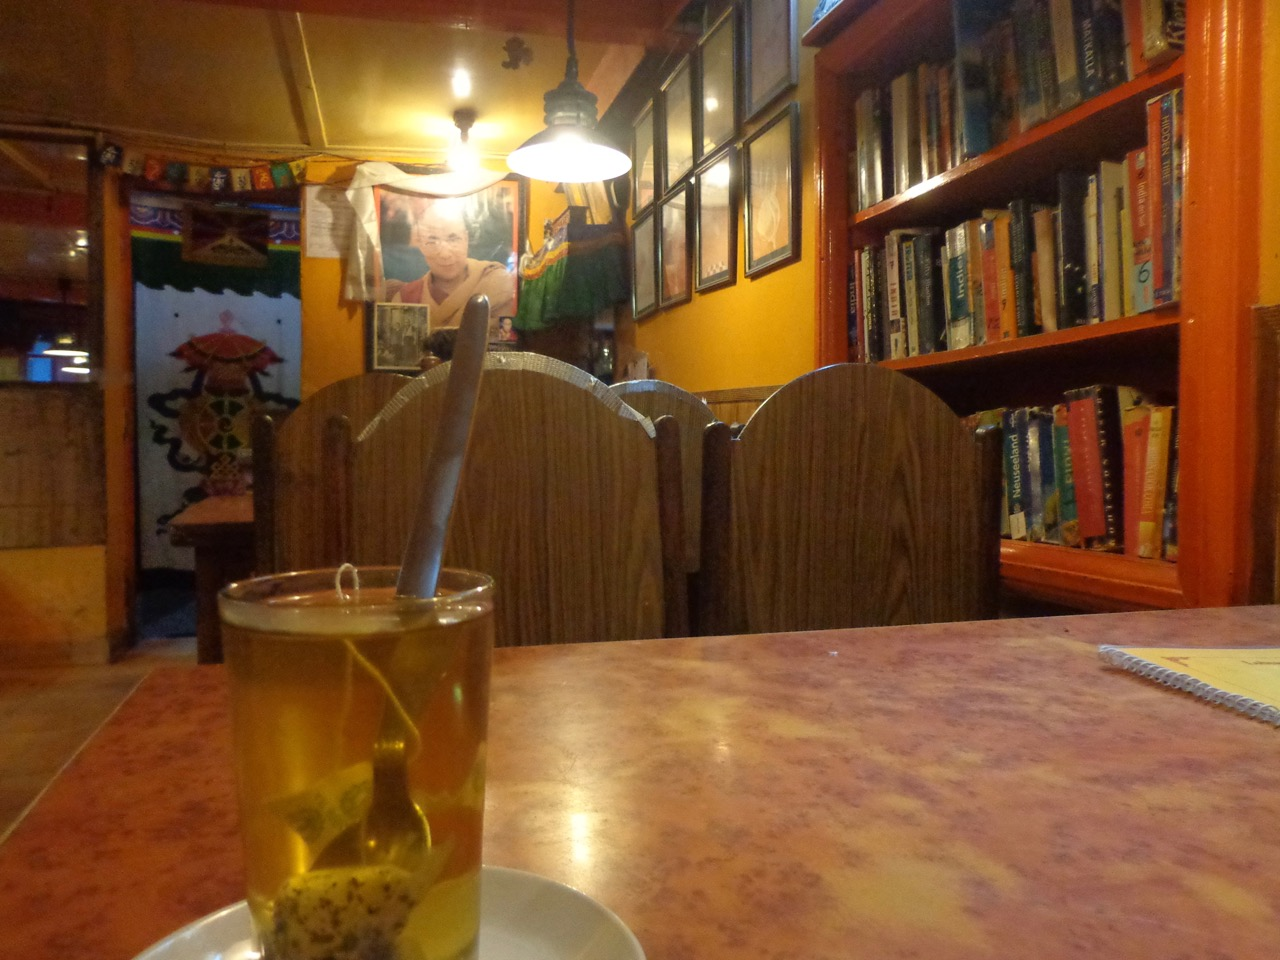 The bookshelf at Lobsang's Four Seasons Cafe overlooking the glass of Tibetan herbal tea.